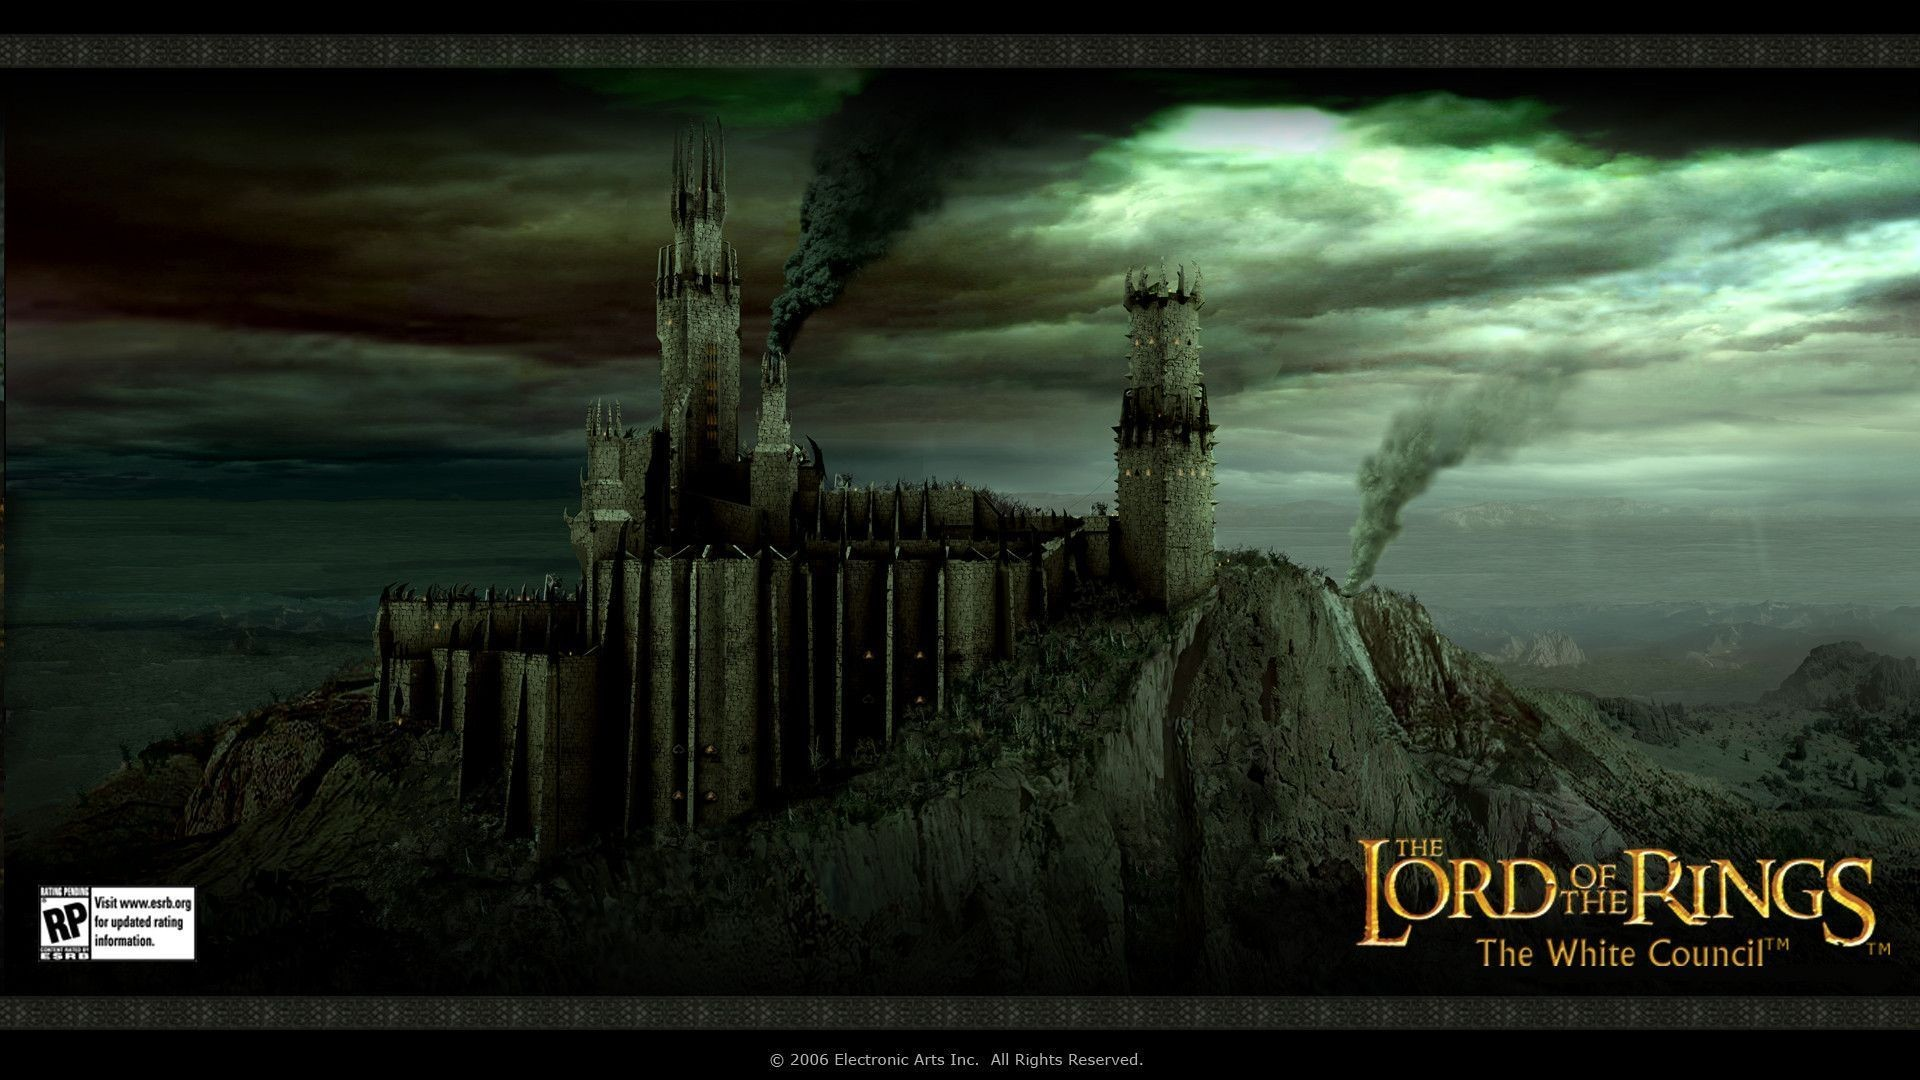 Lord Of The Rings HD Wallpapers – Wallpaper Cave